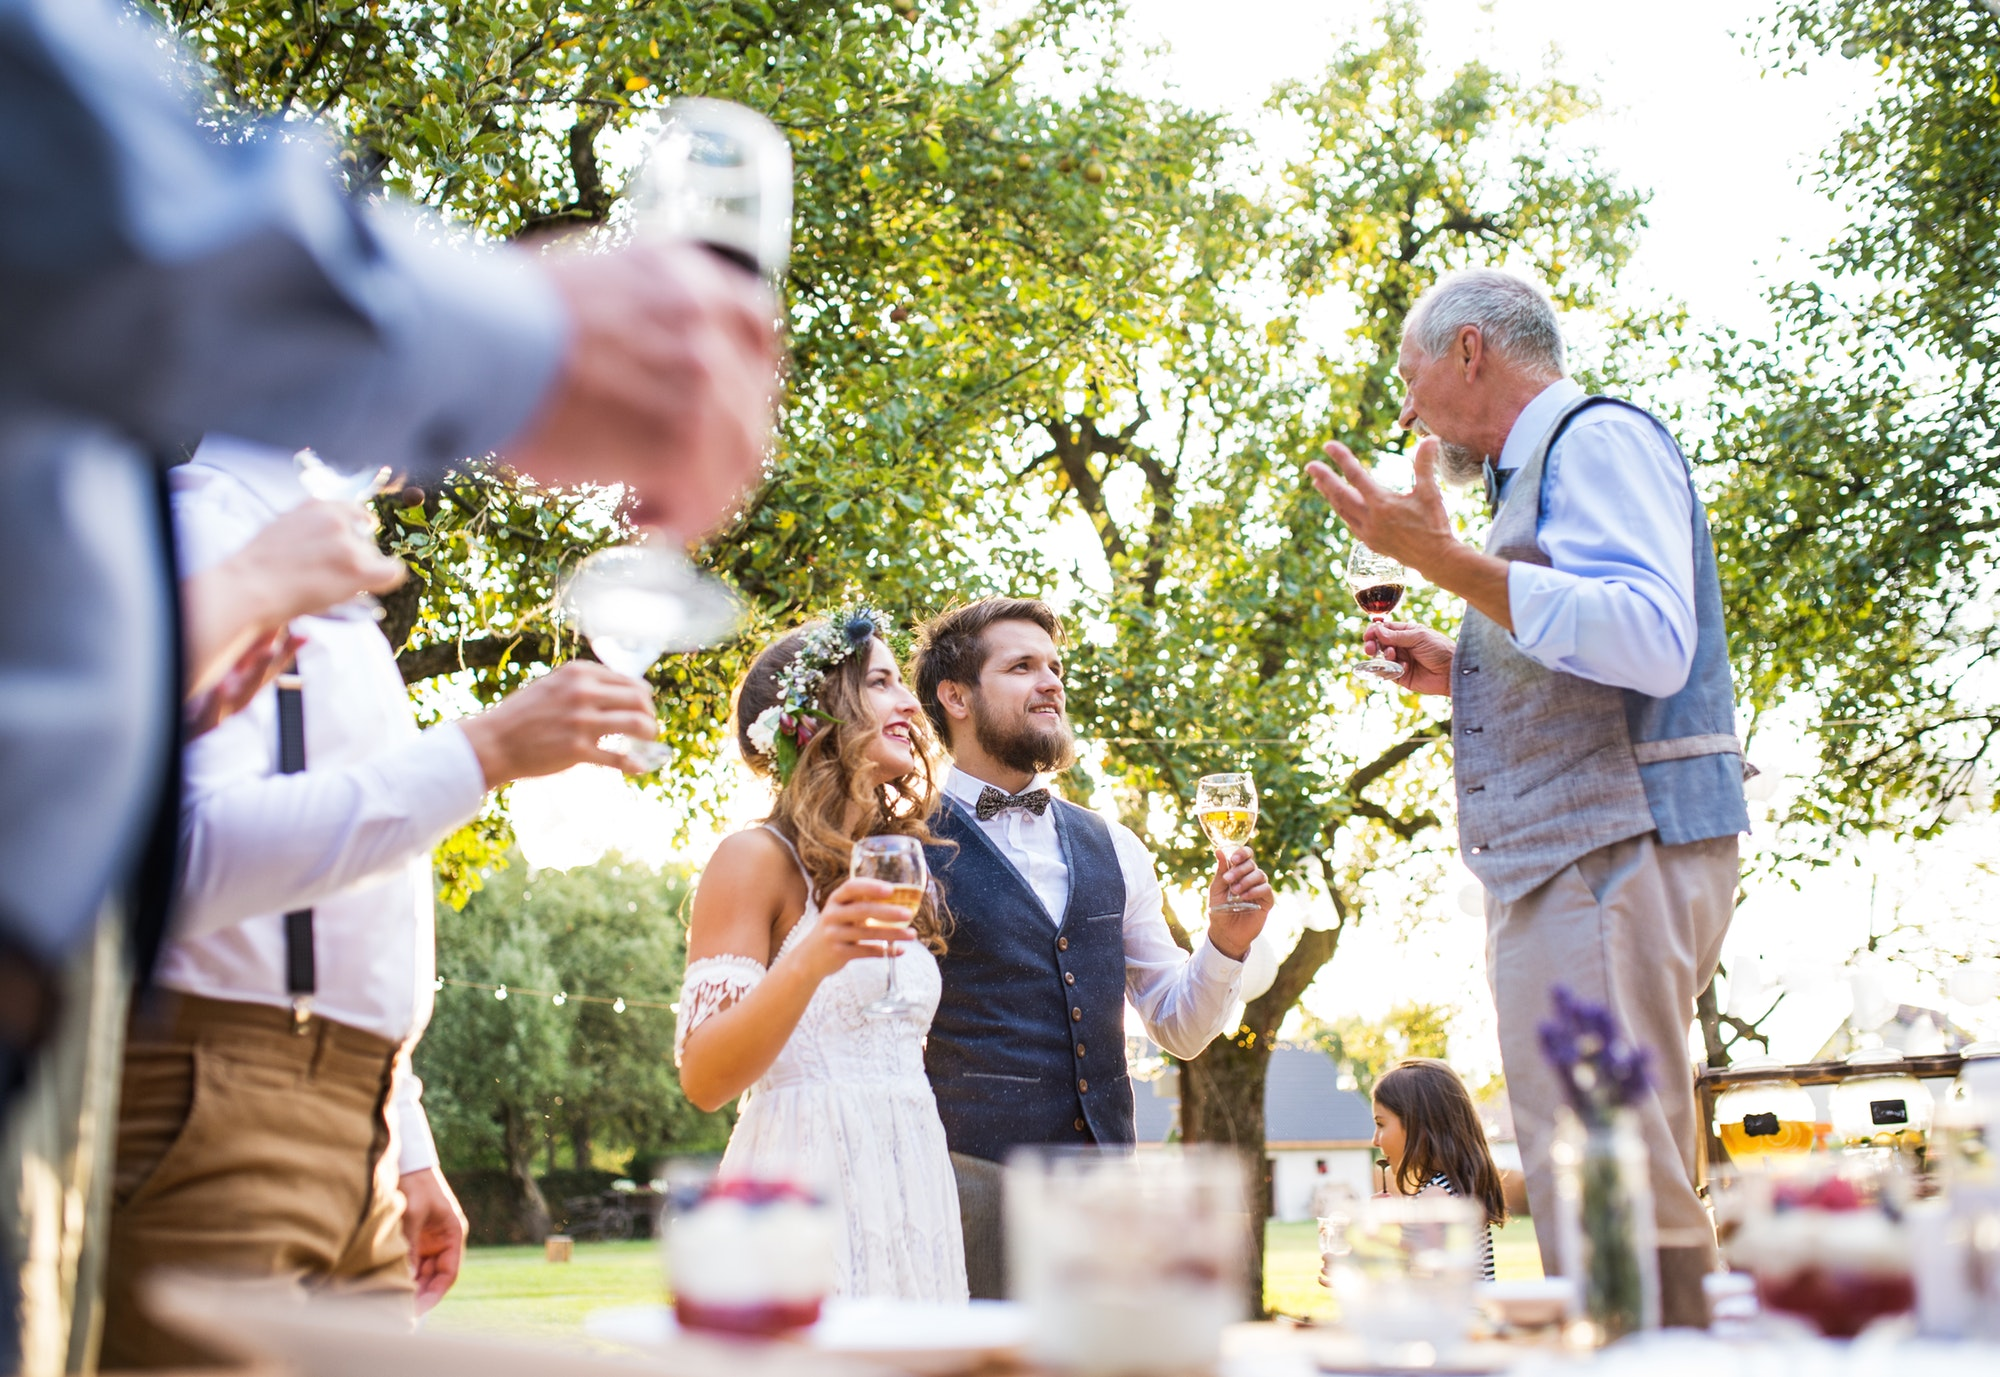 A senior man making speech at wedding reception outside in the background.